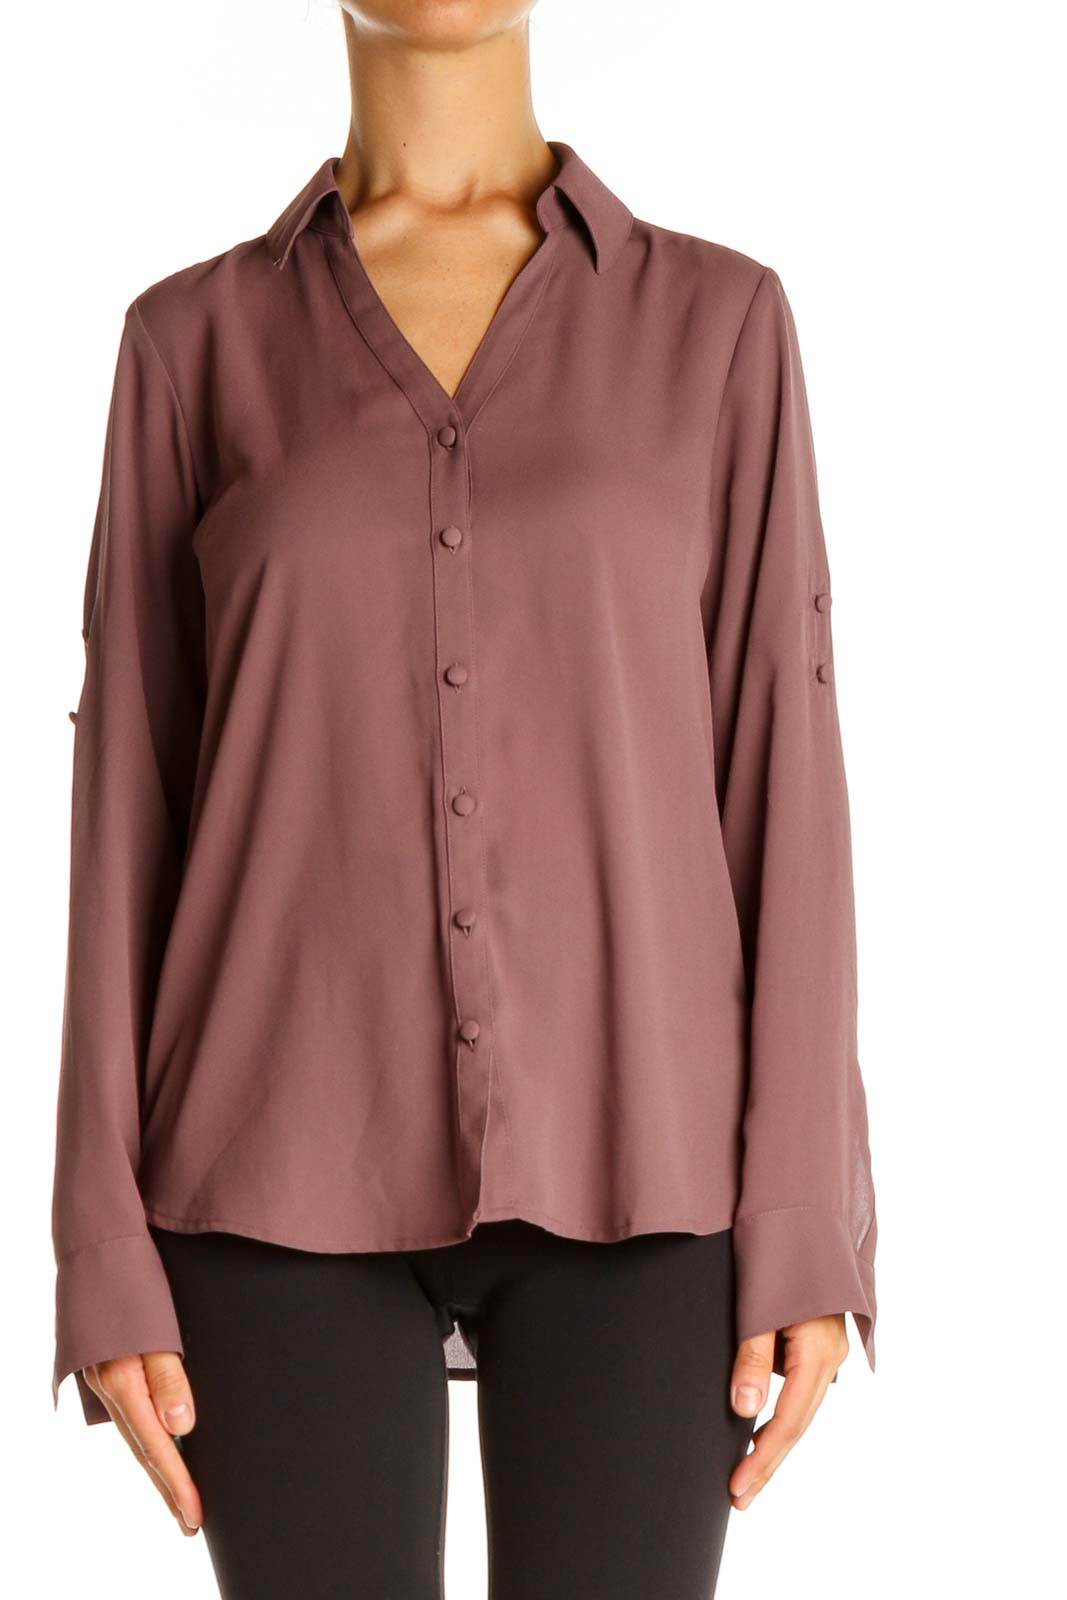 Brown Solid Formal Shirt Front